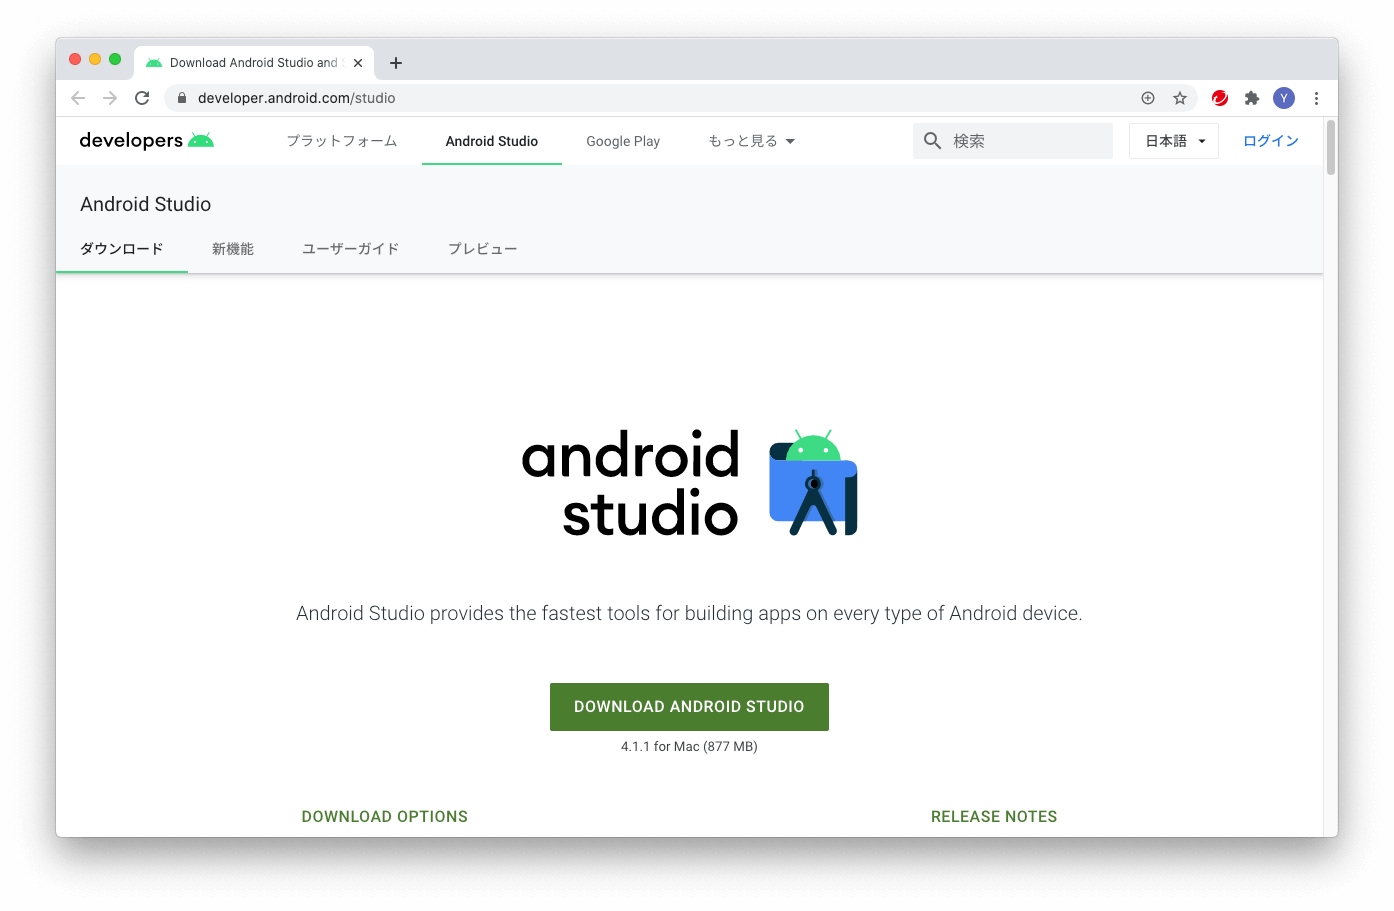 AndroidStudioの公式サイト画面